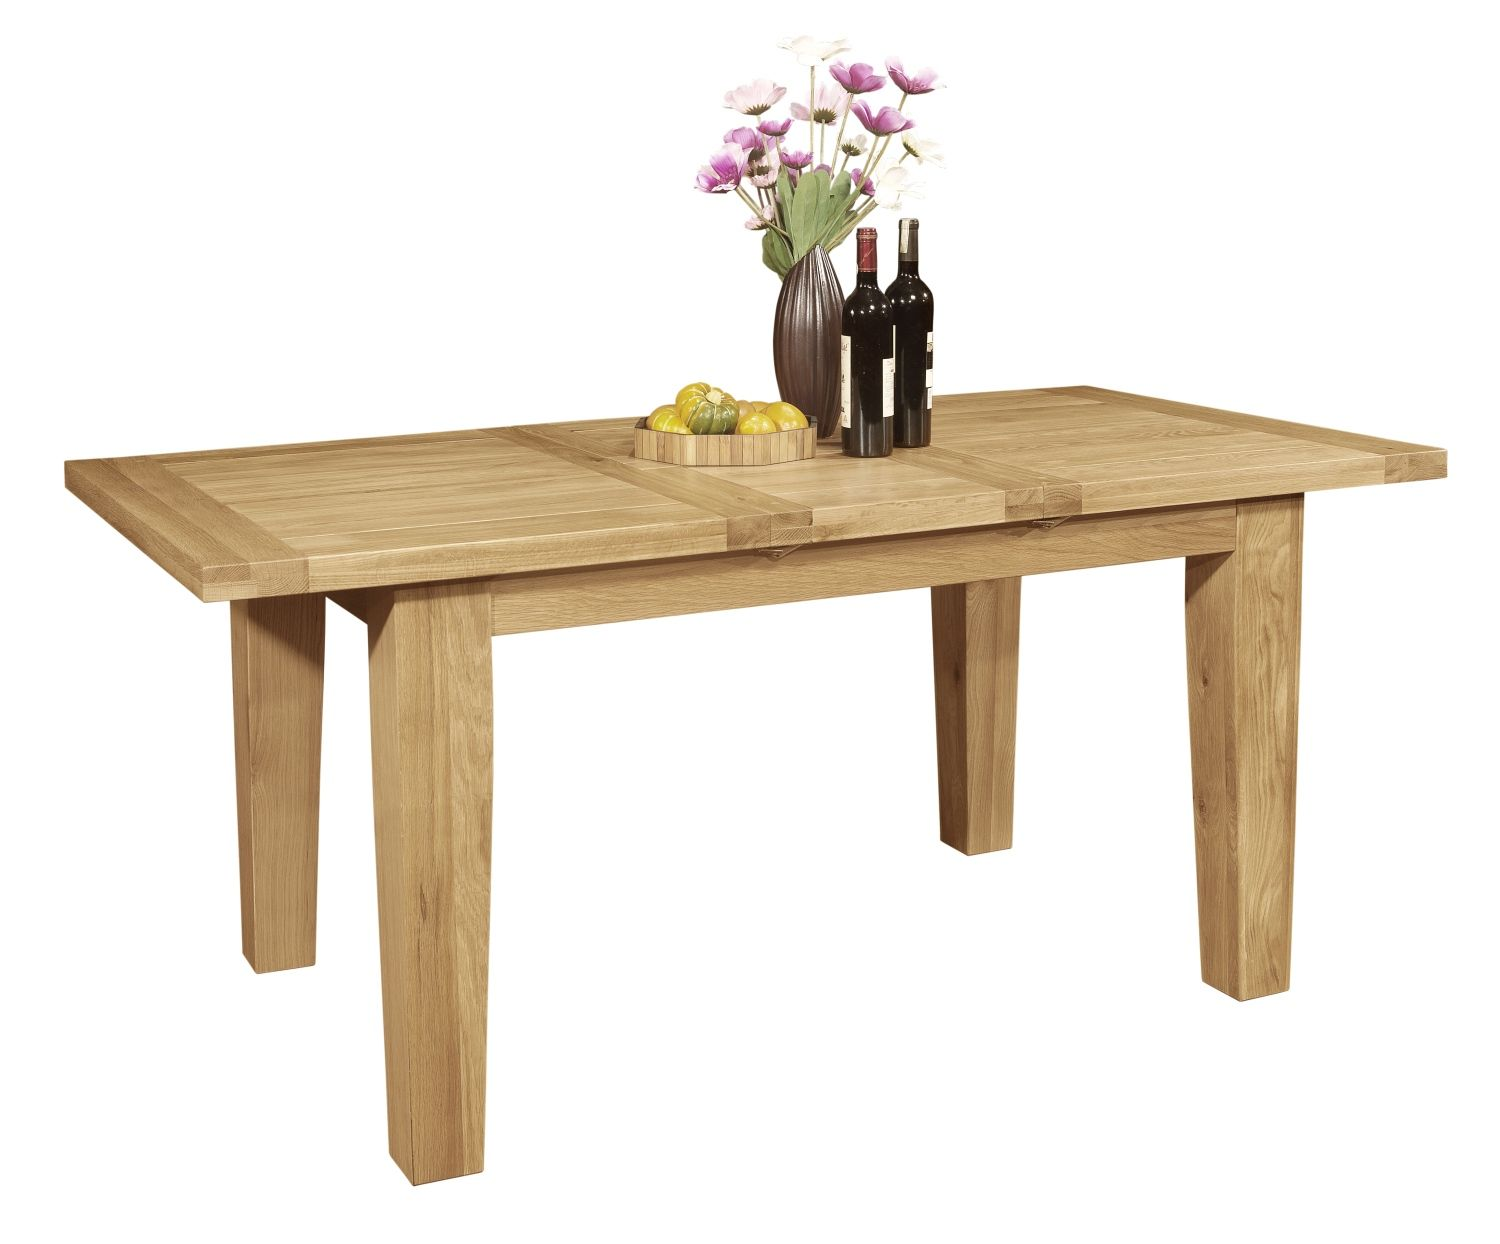 Captivating extra large dining table uk